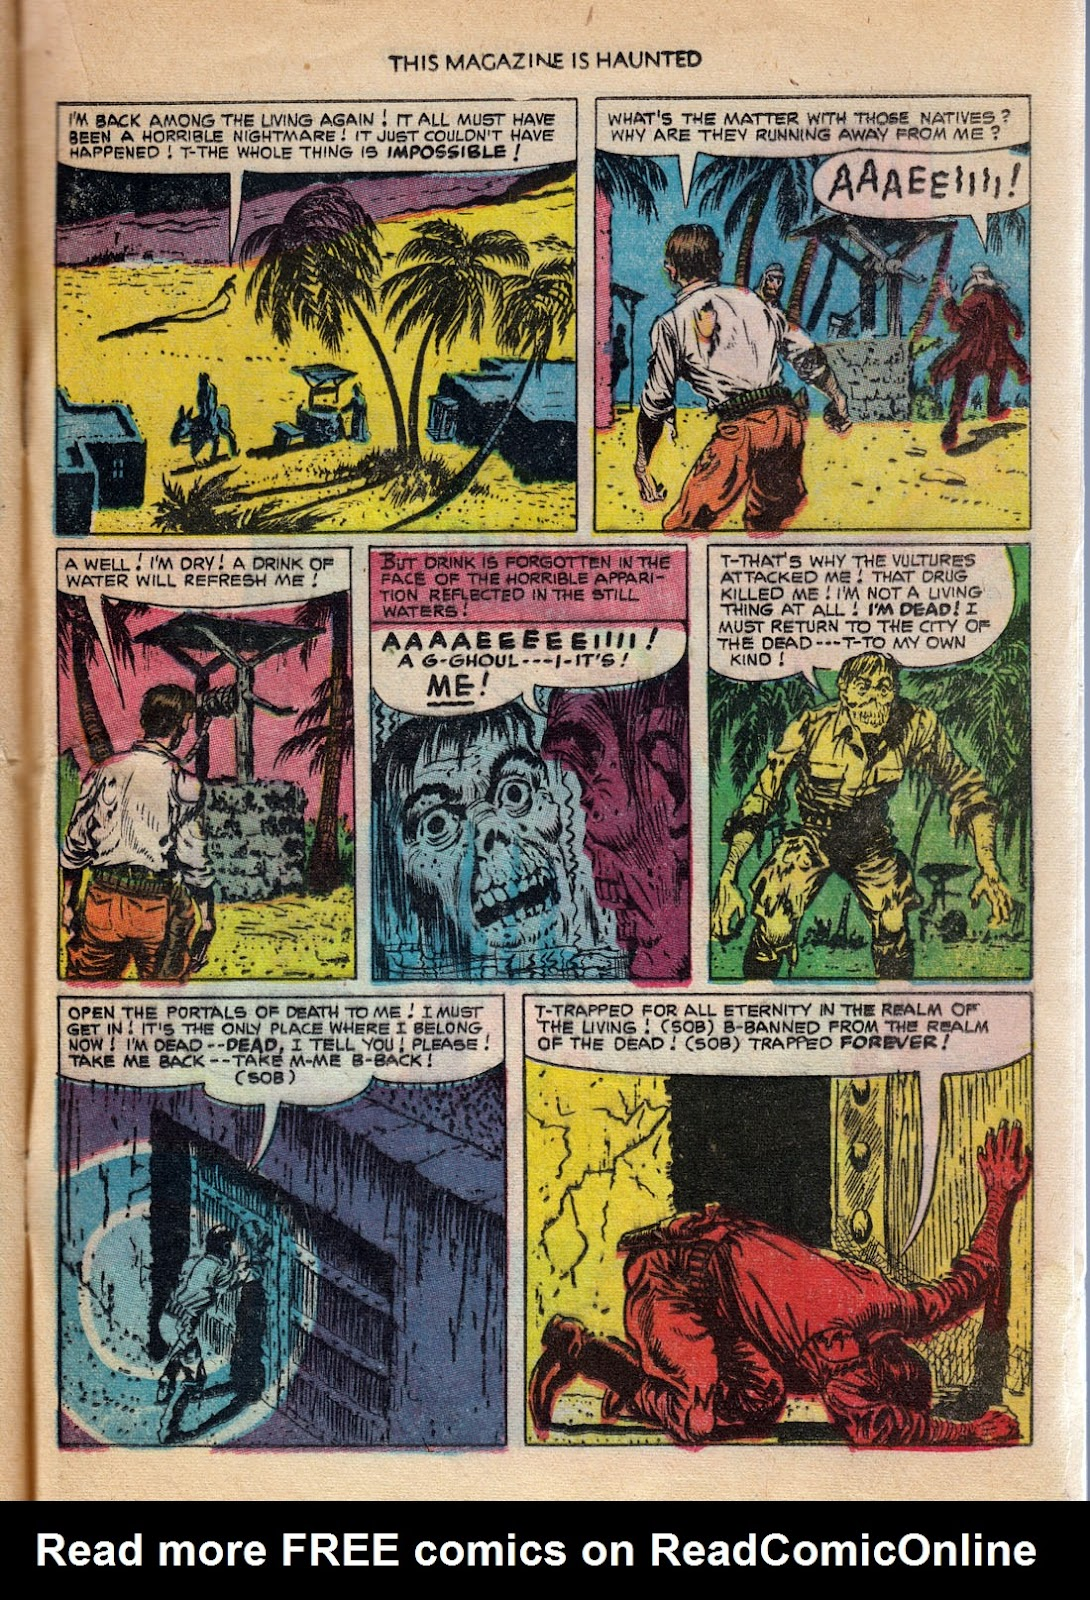 Read online This Magazine Is Haunted comic -  Issue #10 - 17